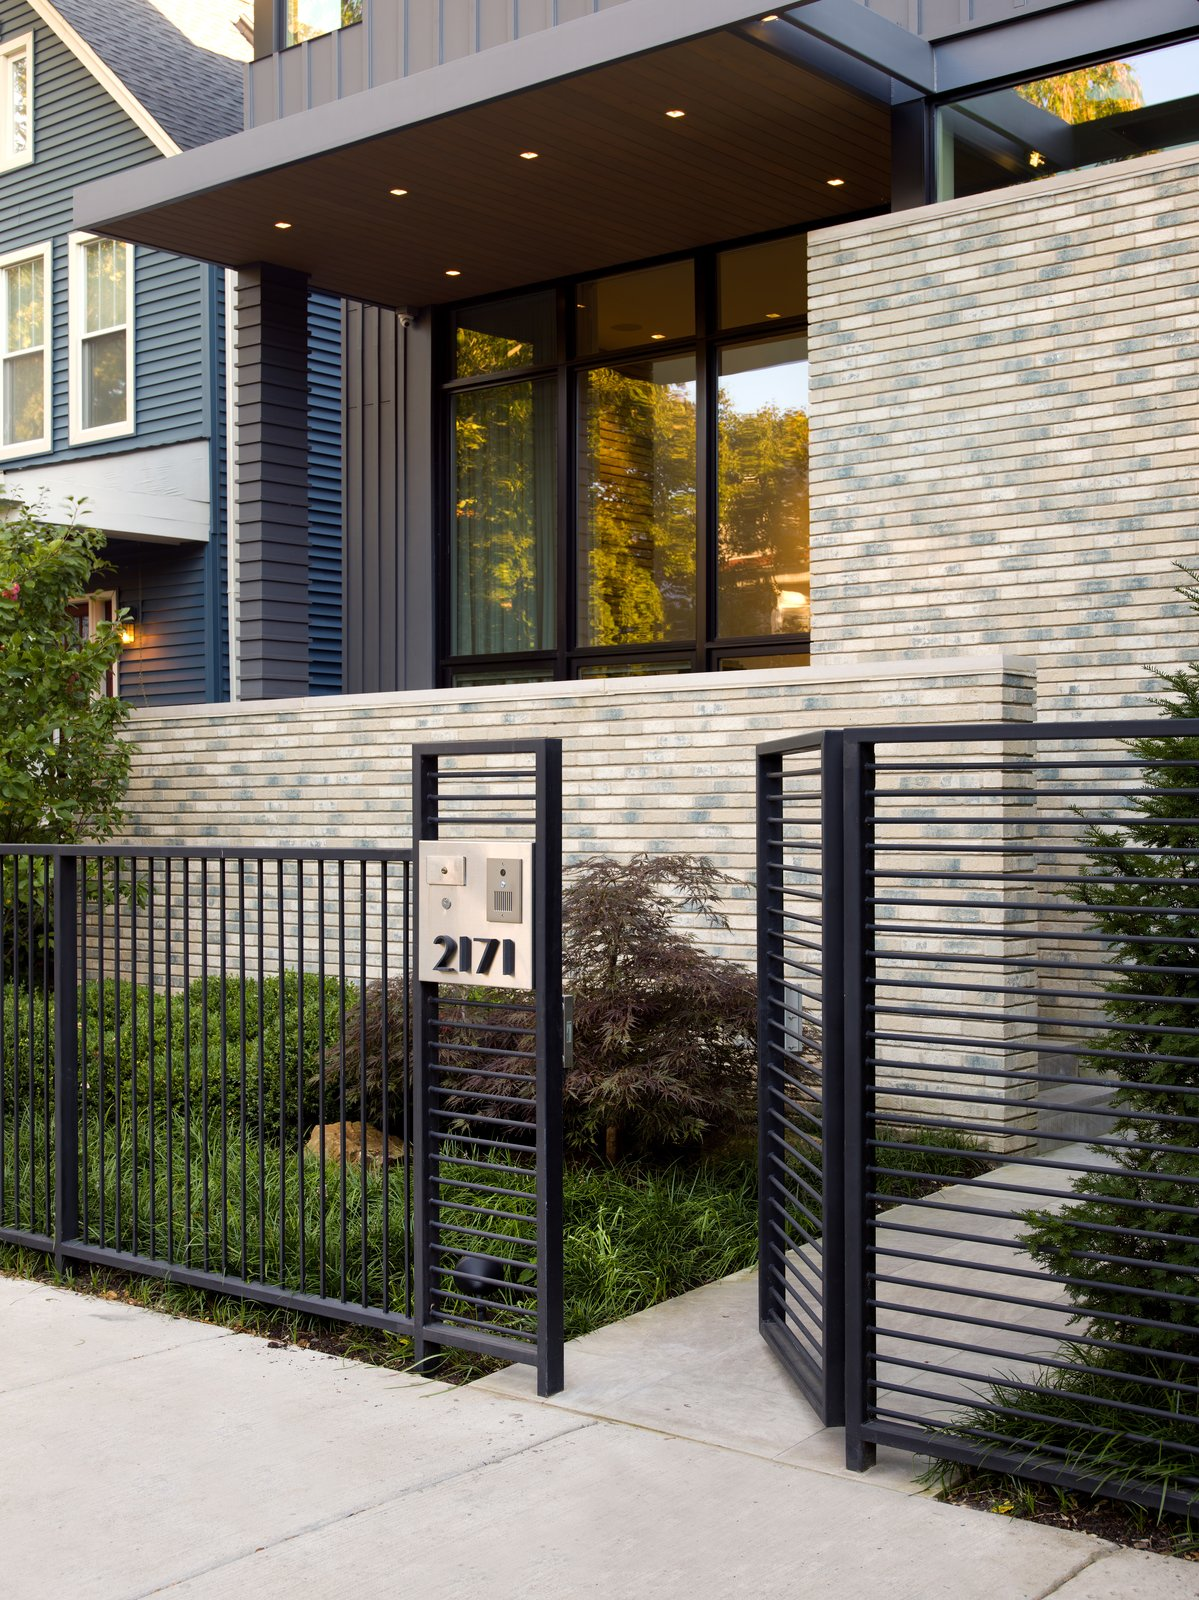 Outdoor, Hardscapes, Front Yard, Horizontal Fences, Wall, Stone Patio, Porch, Deck, Wood Fences, Wall, Shrubs, Pavers Patio, Porch, Deck, Landscape Lighting, Grass, Small Patio, Porch, Deck, and Metal Fences, Wall  Eastwood Residence by Searl Lamaster Howe